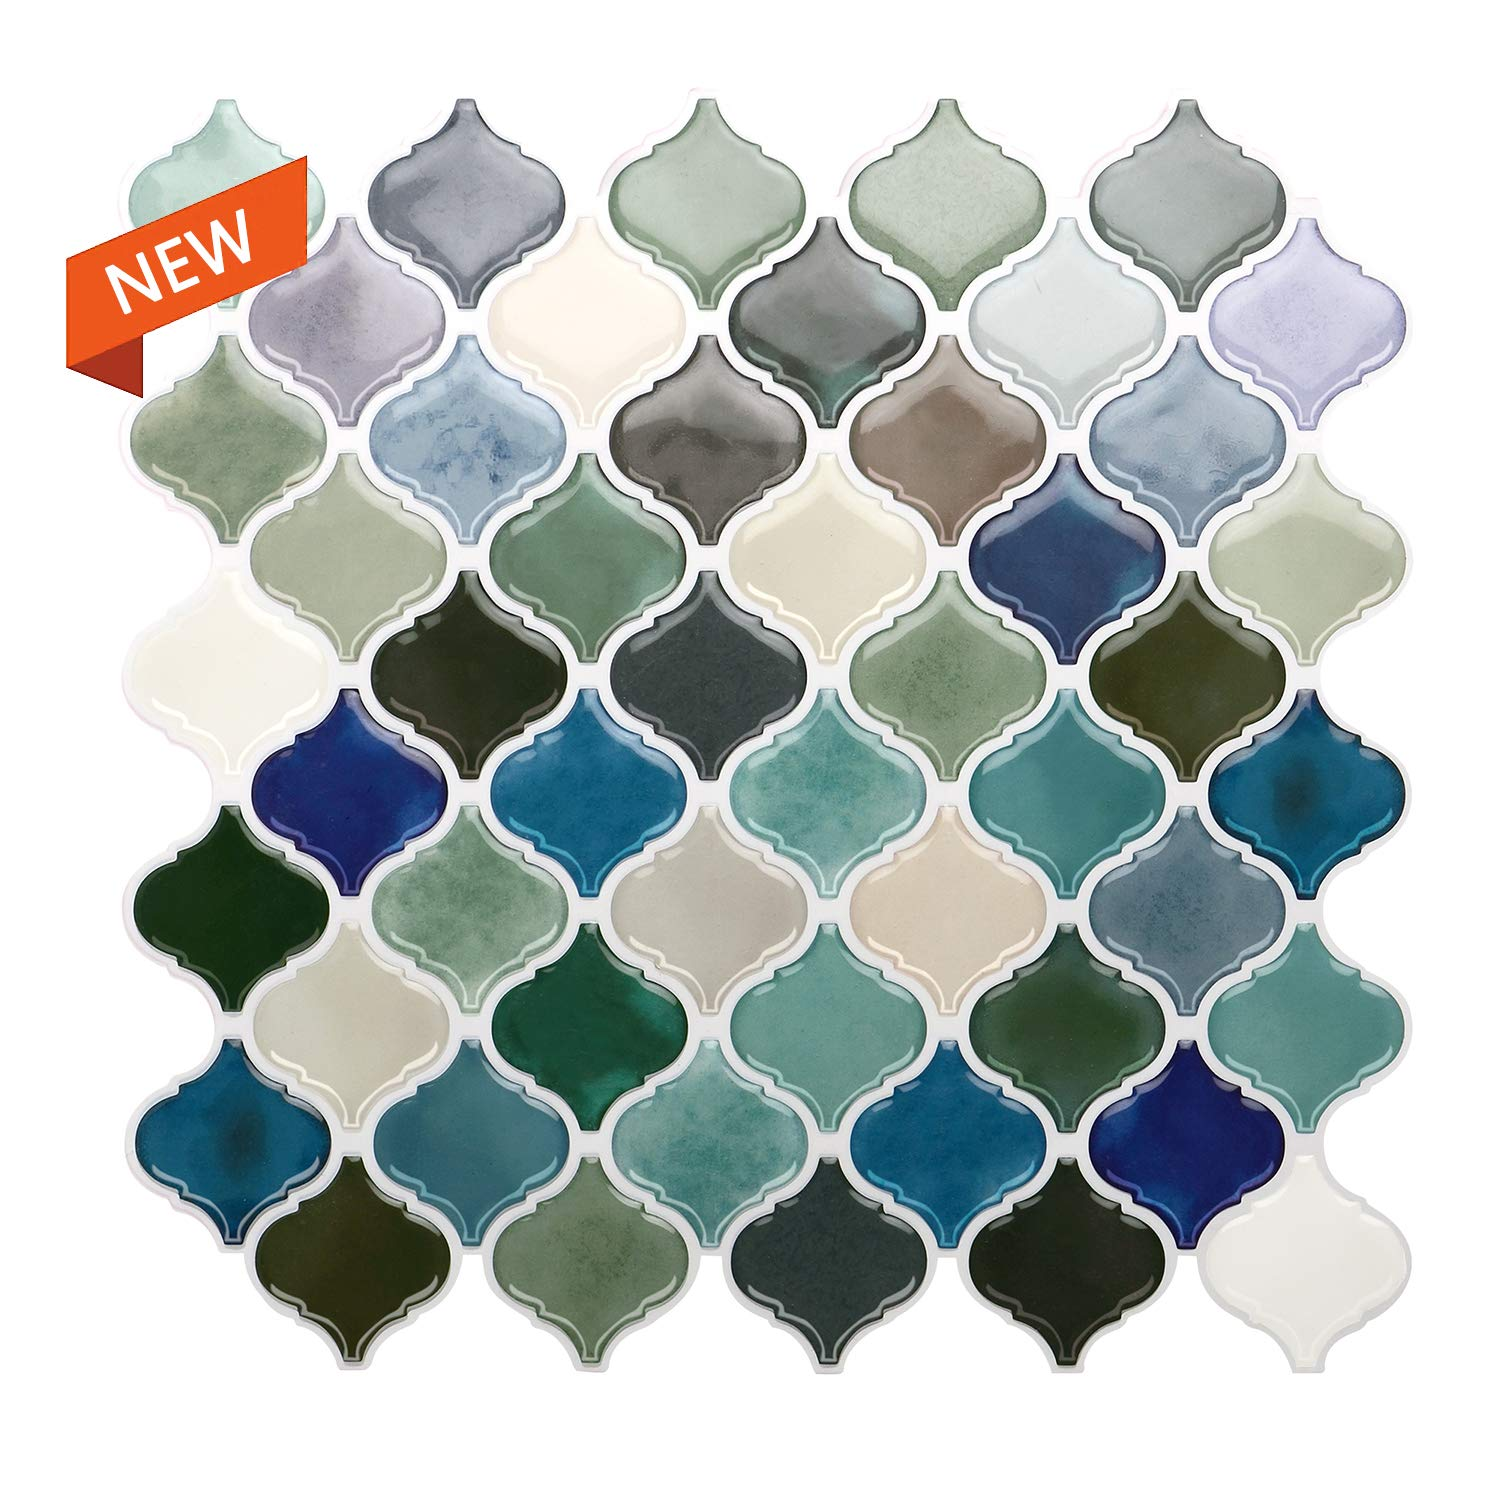 Best self stick tiles for wall | Amazon.com